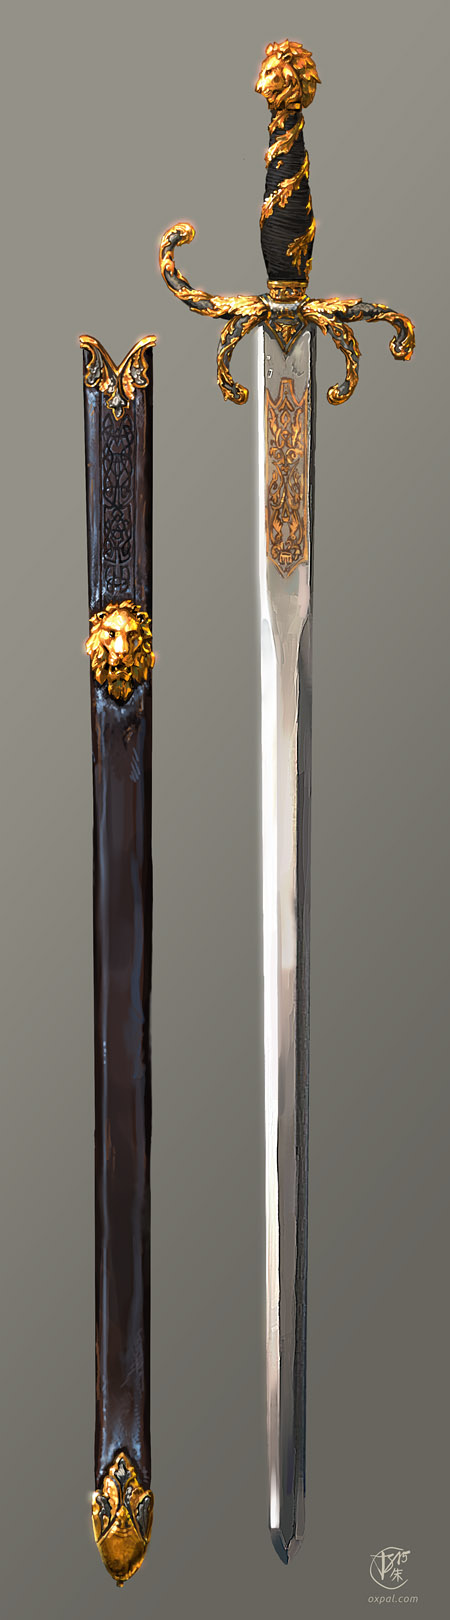 Sword Concept Art, Gold Ornaments